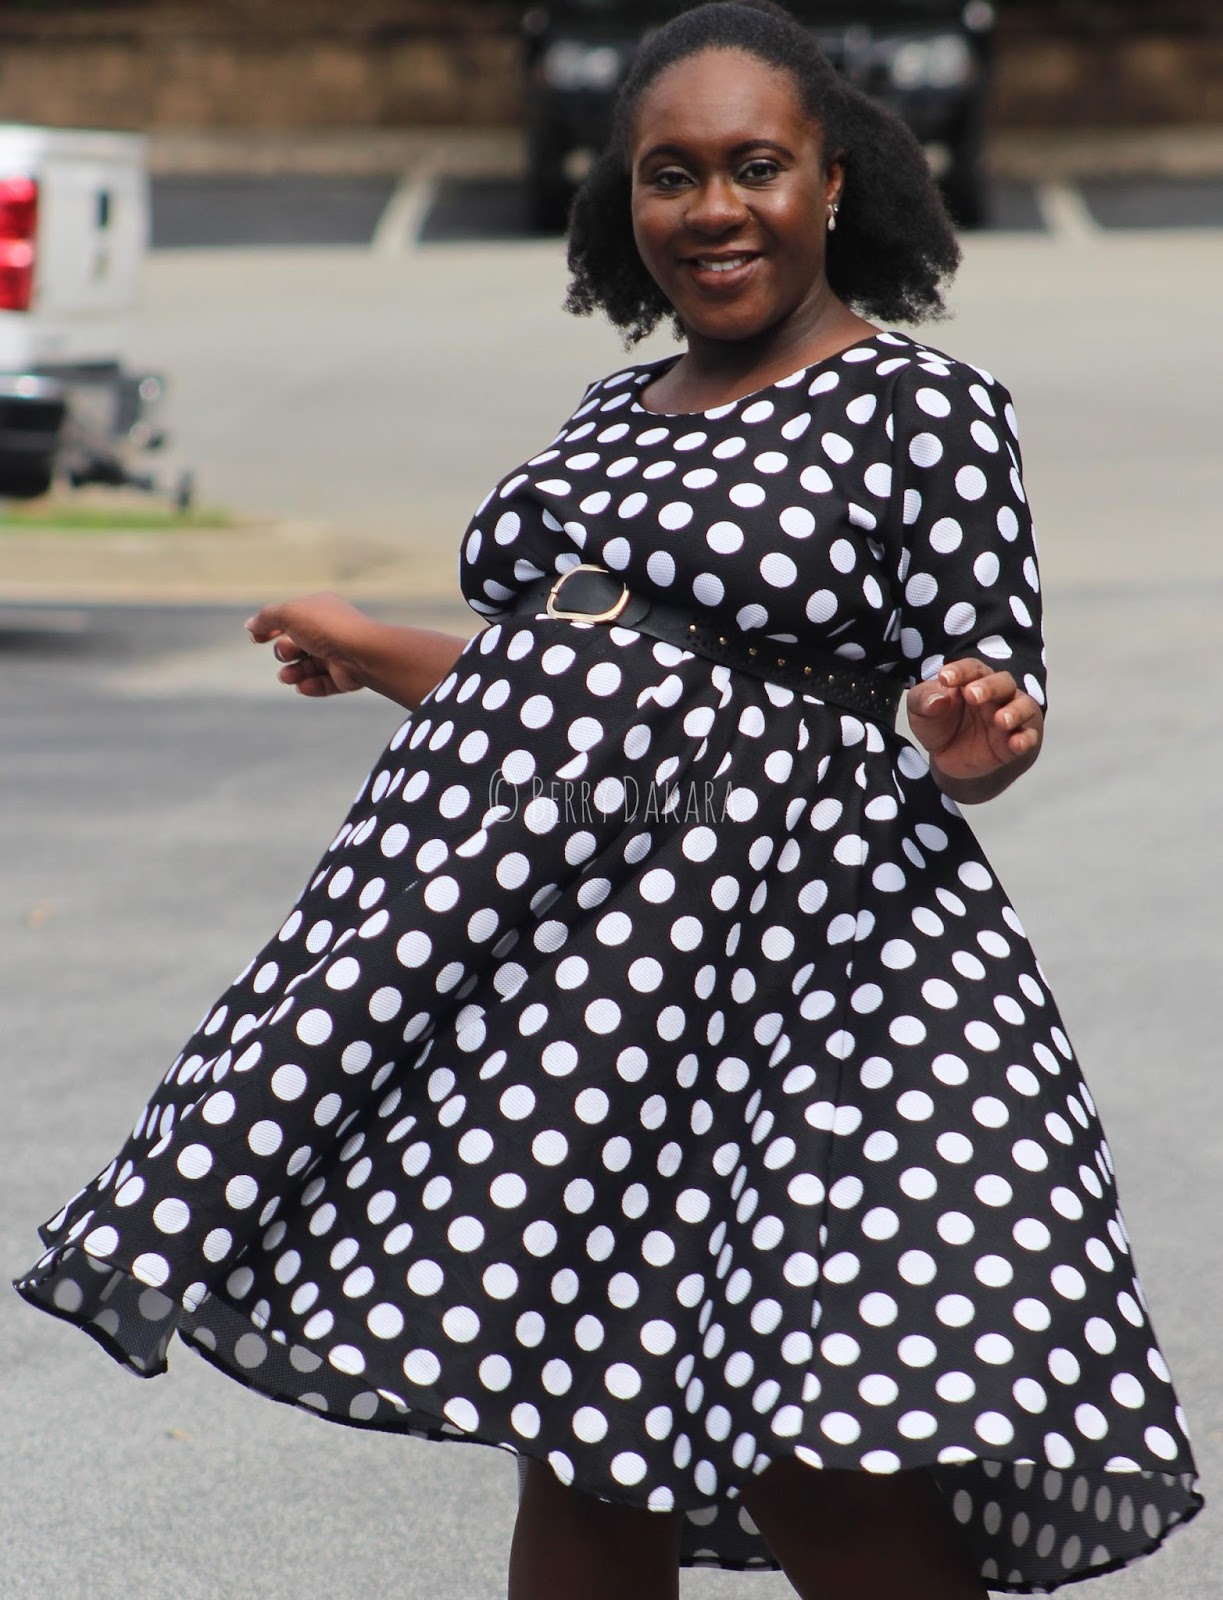 maternity, pregnancy, baby shower, dress, baby shower dress, maternity dress, pregnancy fashion, black and white maternity dress, polka dots dress, dresses for baby shower, tea party baby shower